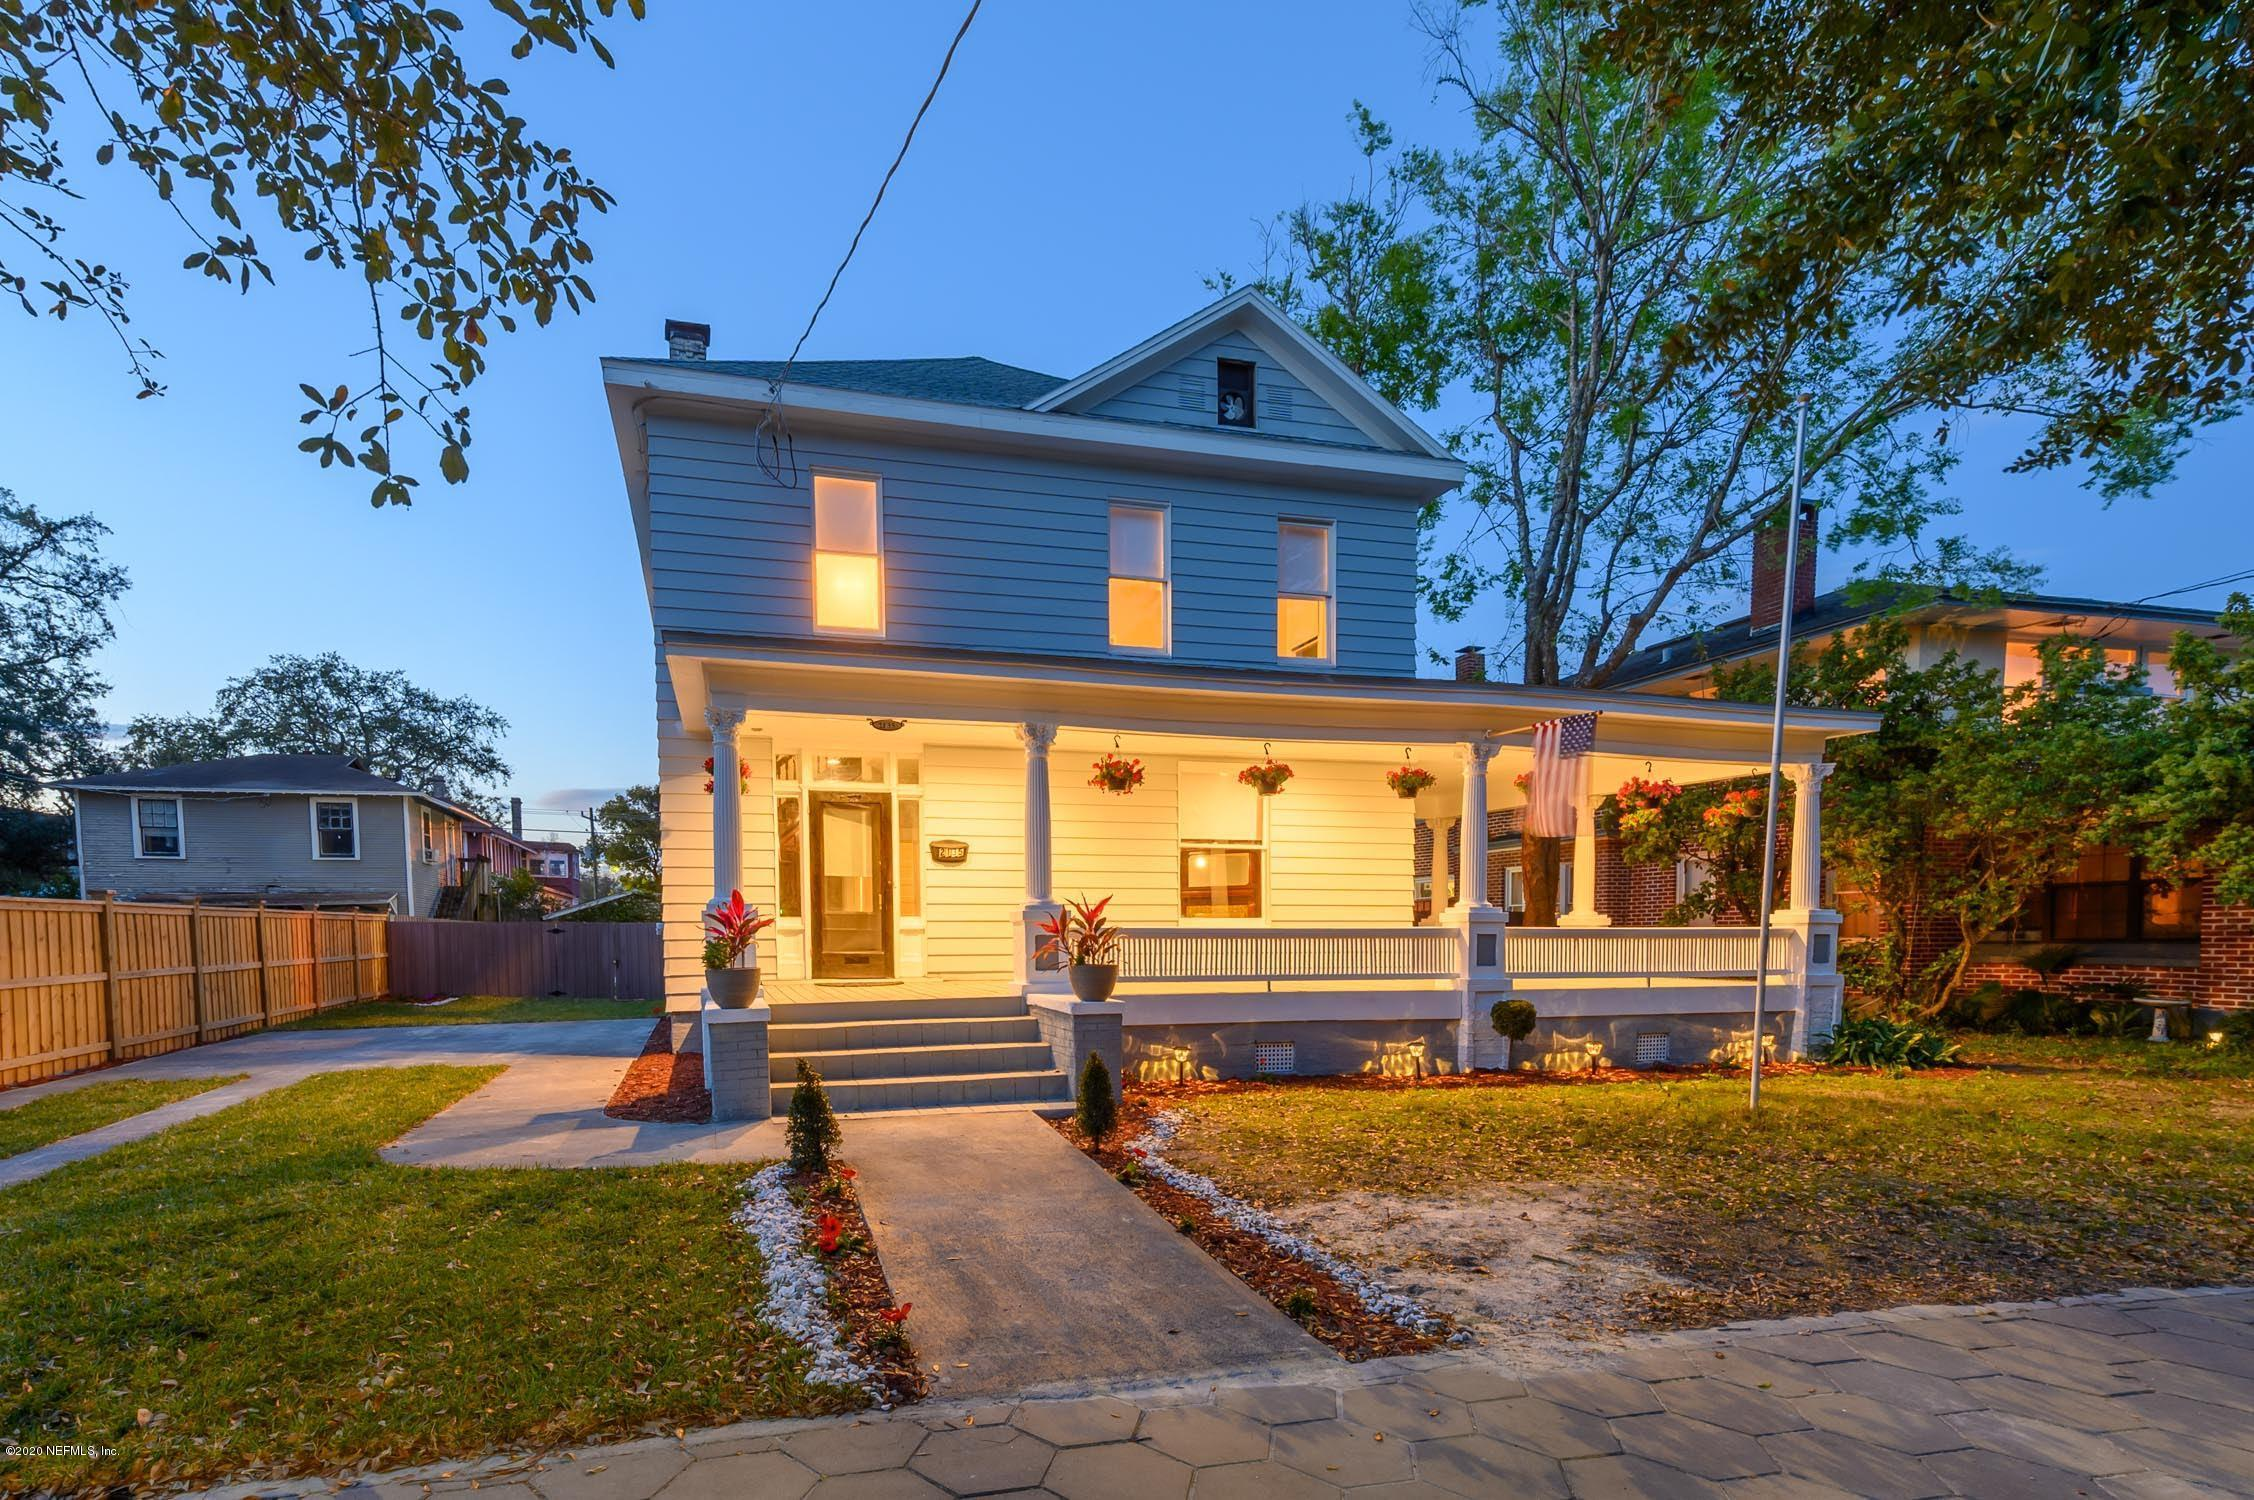 2135 FORBES, JACKSONVILLE, FLORIDA 32204, 4 Bedrooms Bedrooms, ,4 BathroomsBathrooms,Residential,For sale,FORBES,1083216